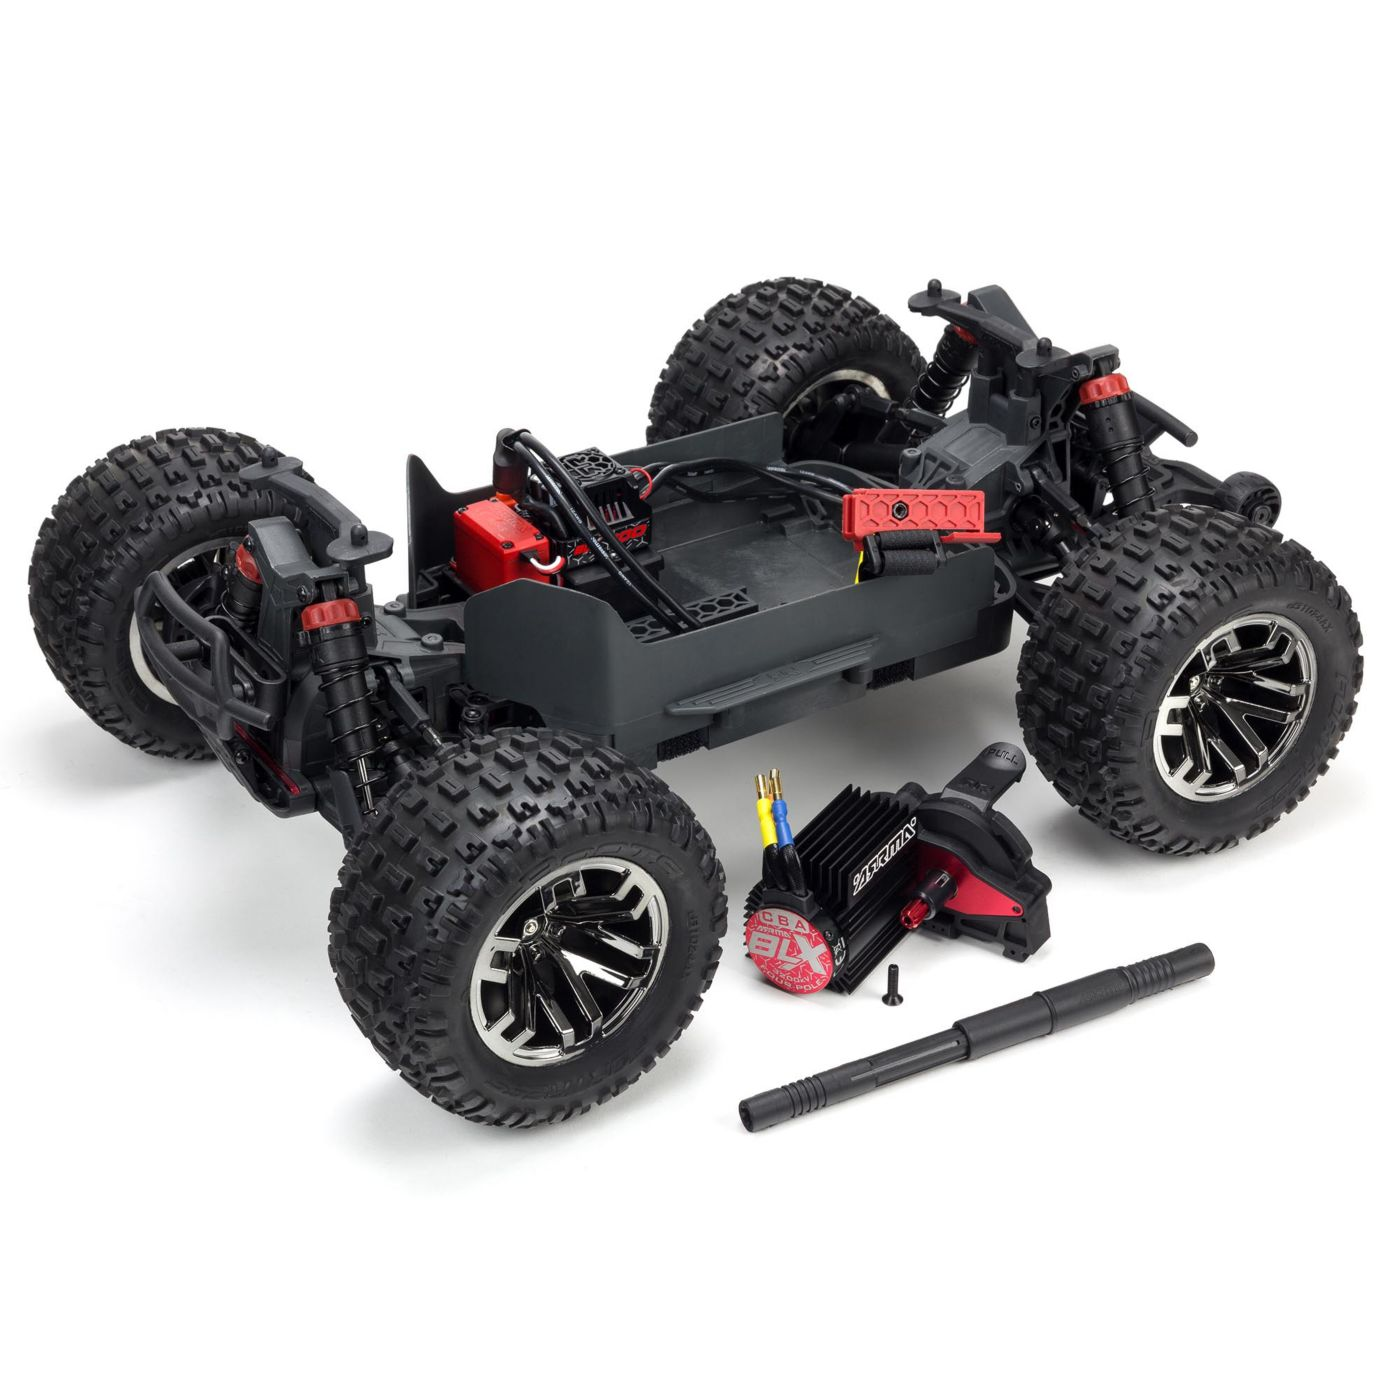 Arrma Granite 3S 4x4 Brushless BLX RTR 5